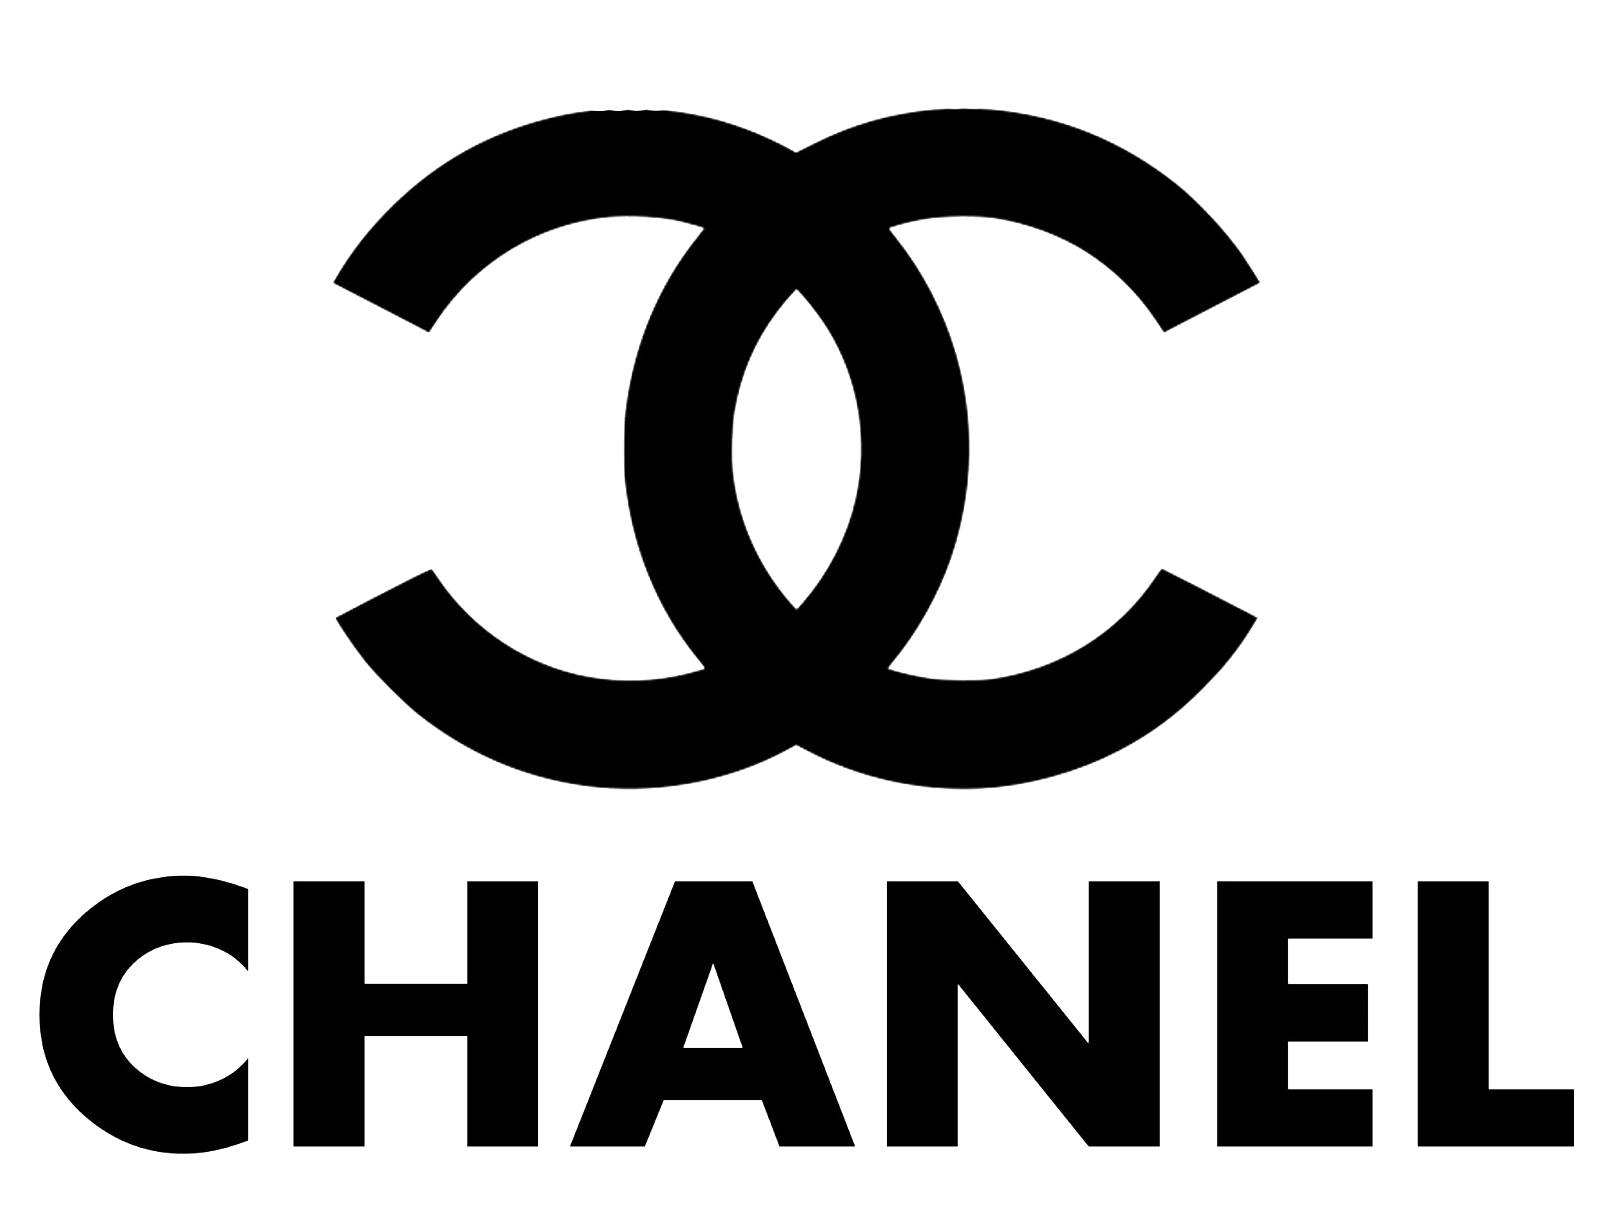 Logo Brand Trademark Chanel Free Clipart HD PNG Image